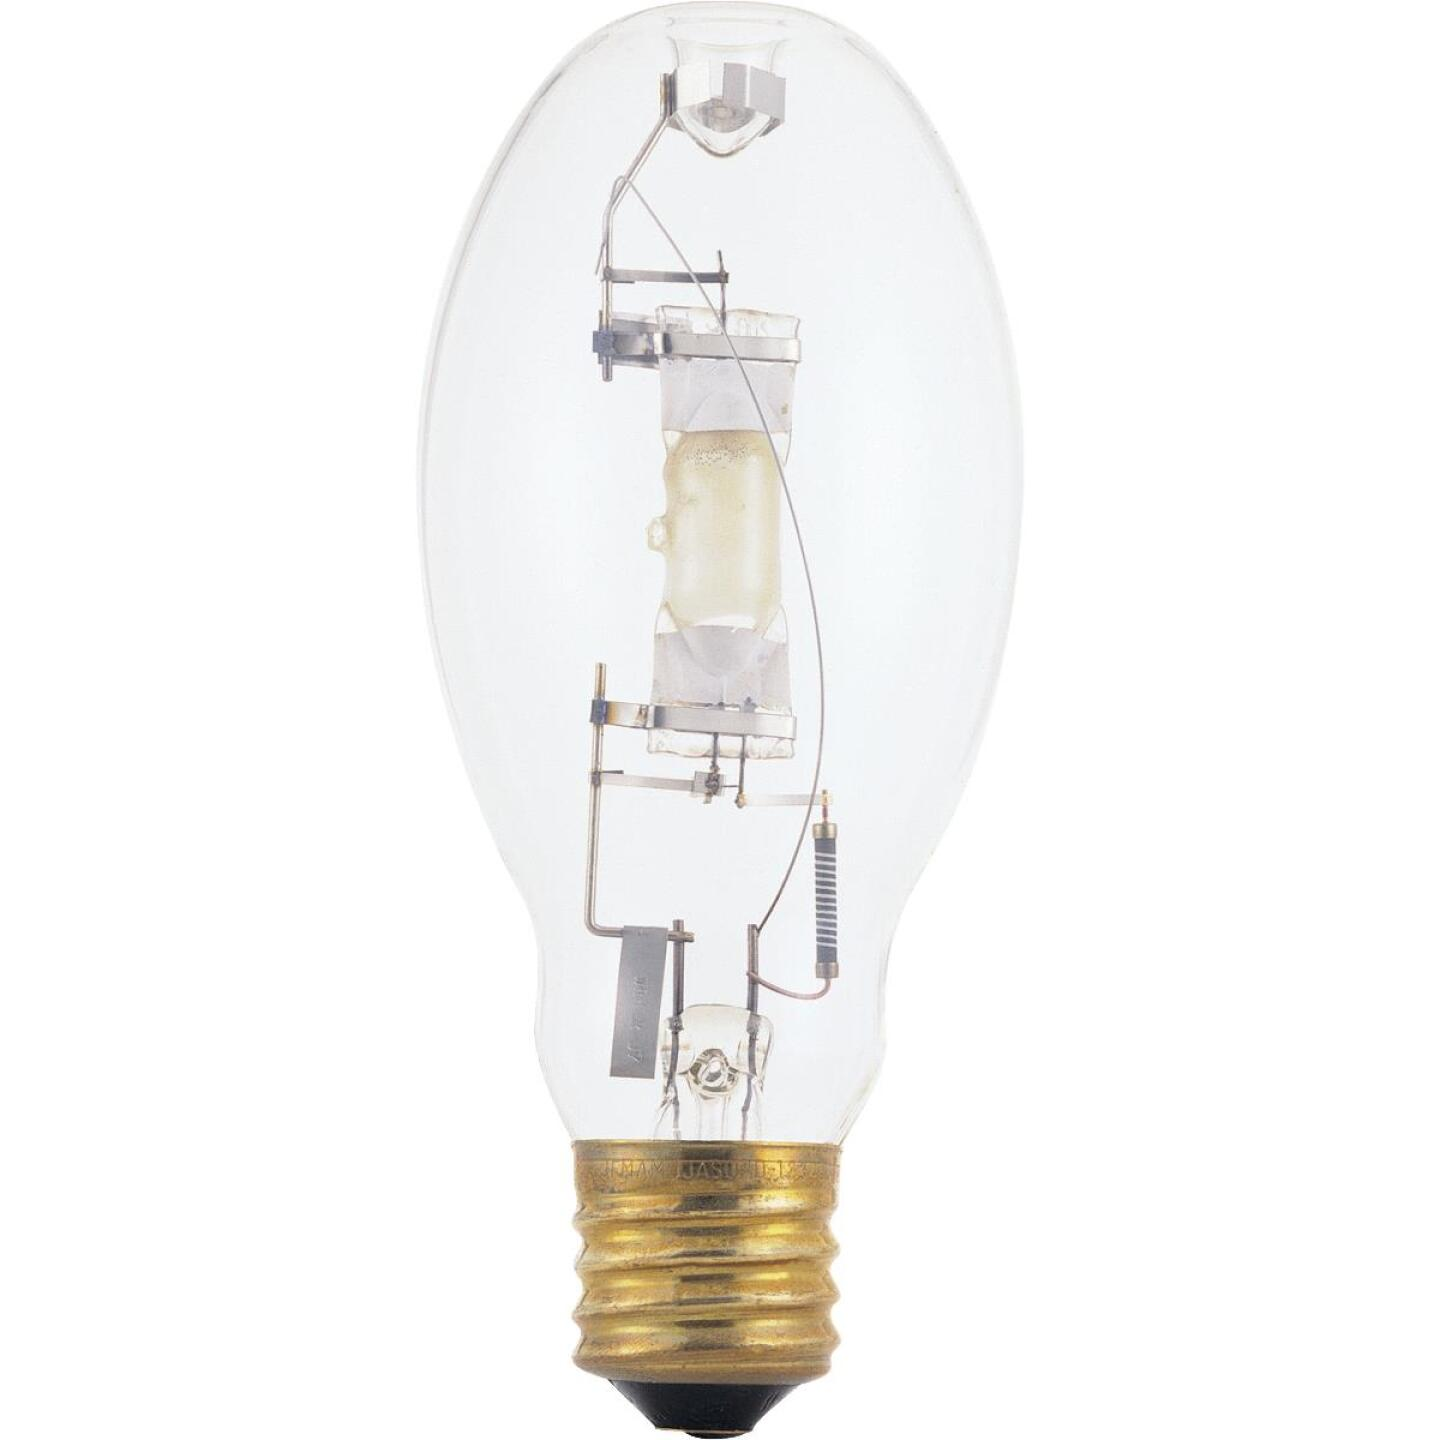 Wobblelight Replacement 400W Clear Standard High-Intensity Light Bulb Image 1